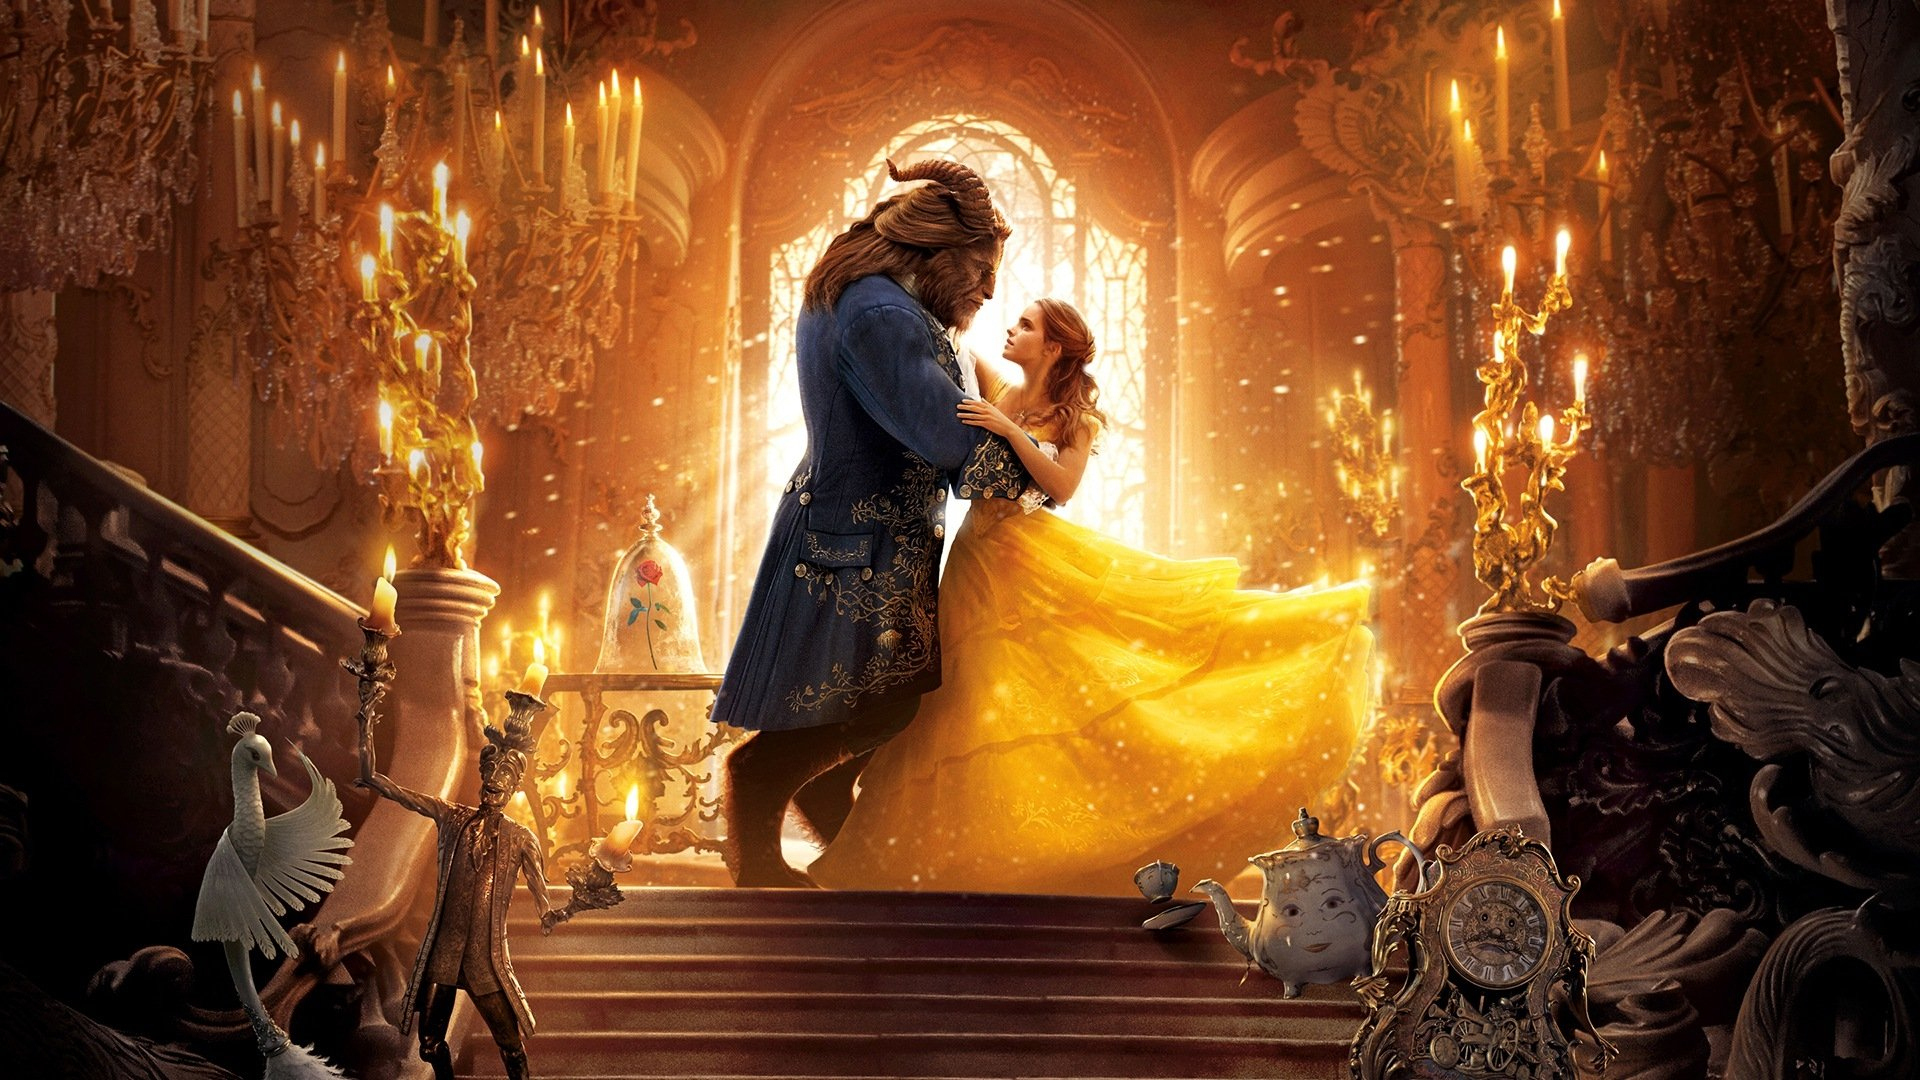 25 beauty and the beast (2017) hd wallpapers | background images